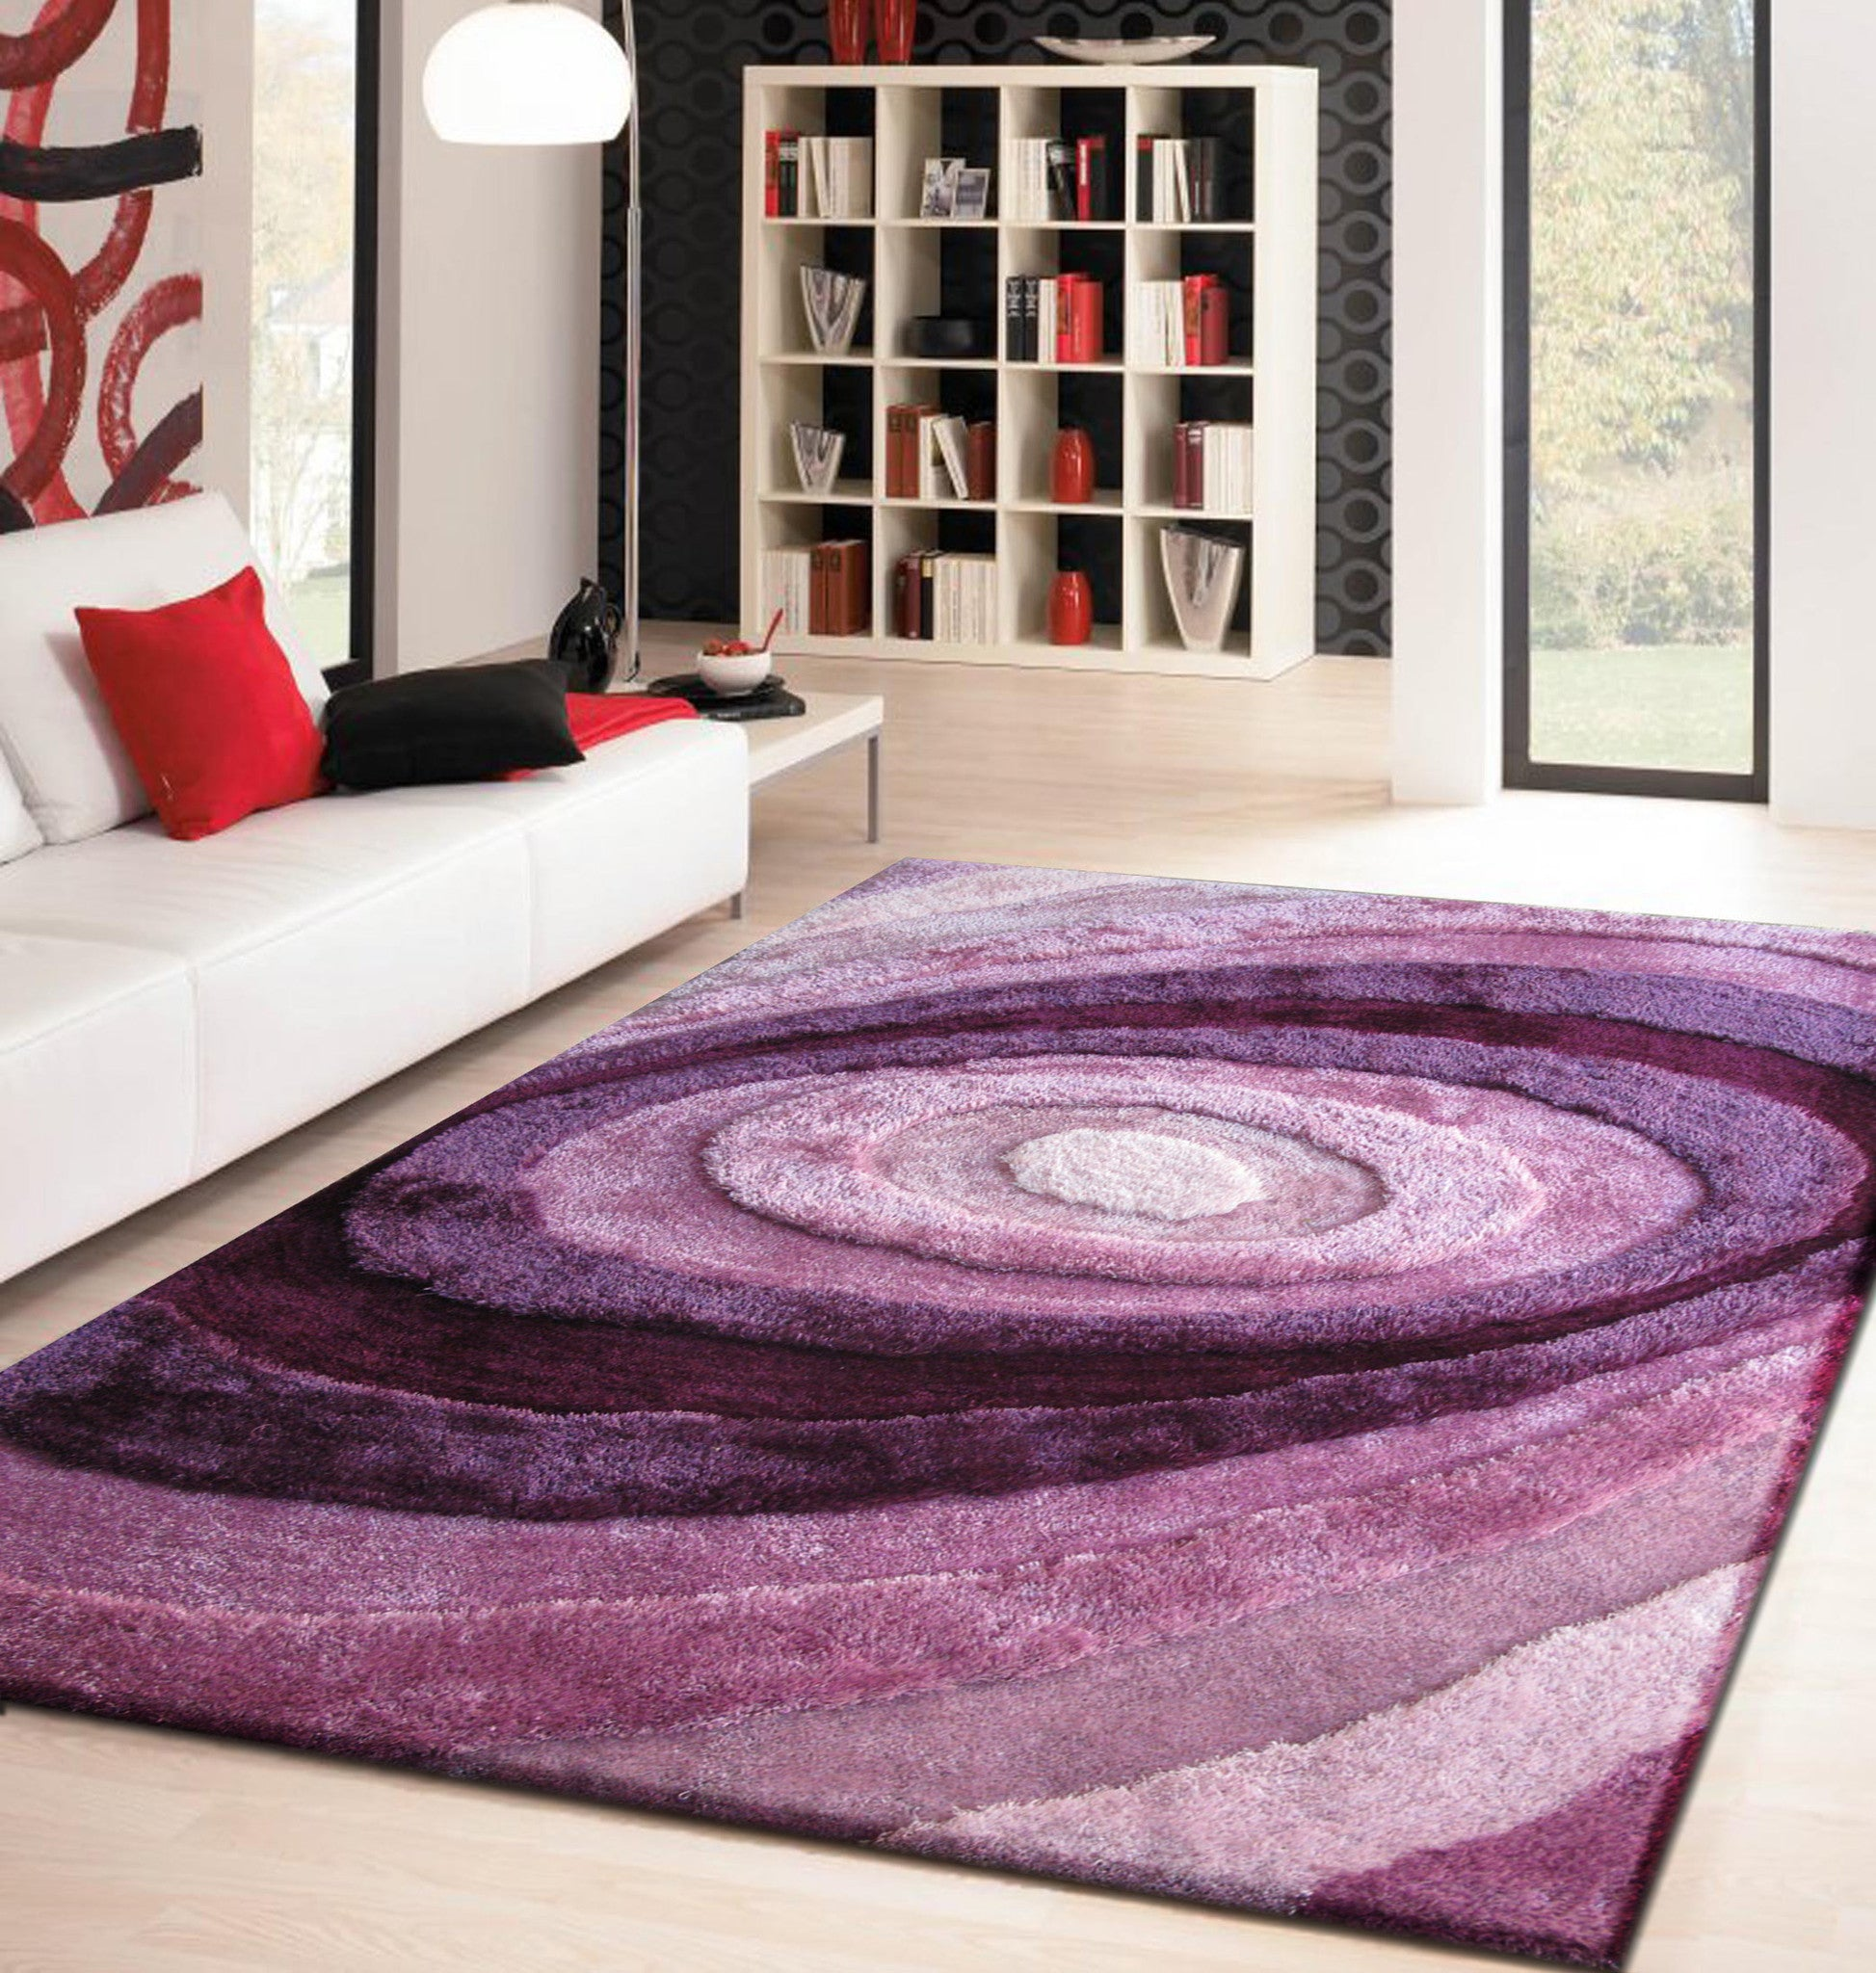 and best decorating modern floor carpet ice rugs luxury design of tile house living ideas purple room picture laminate